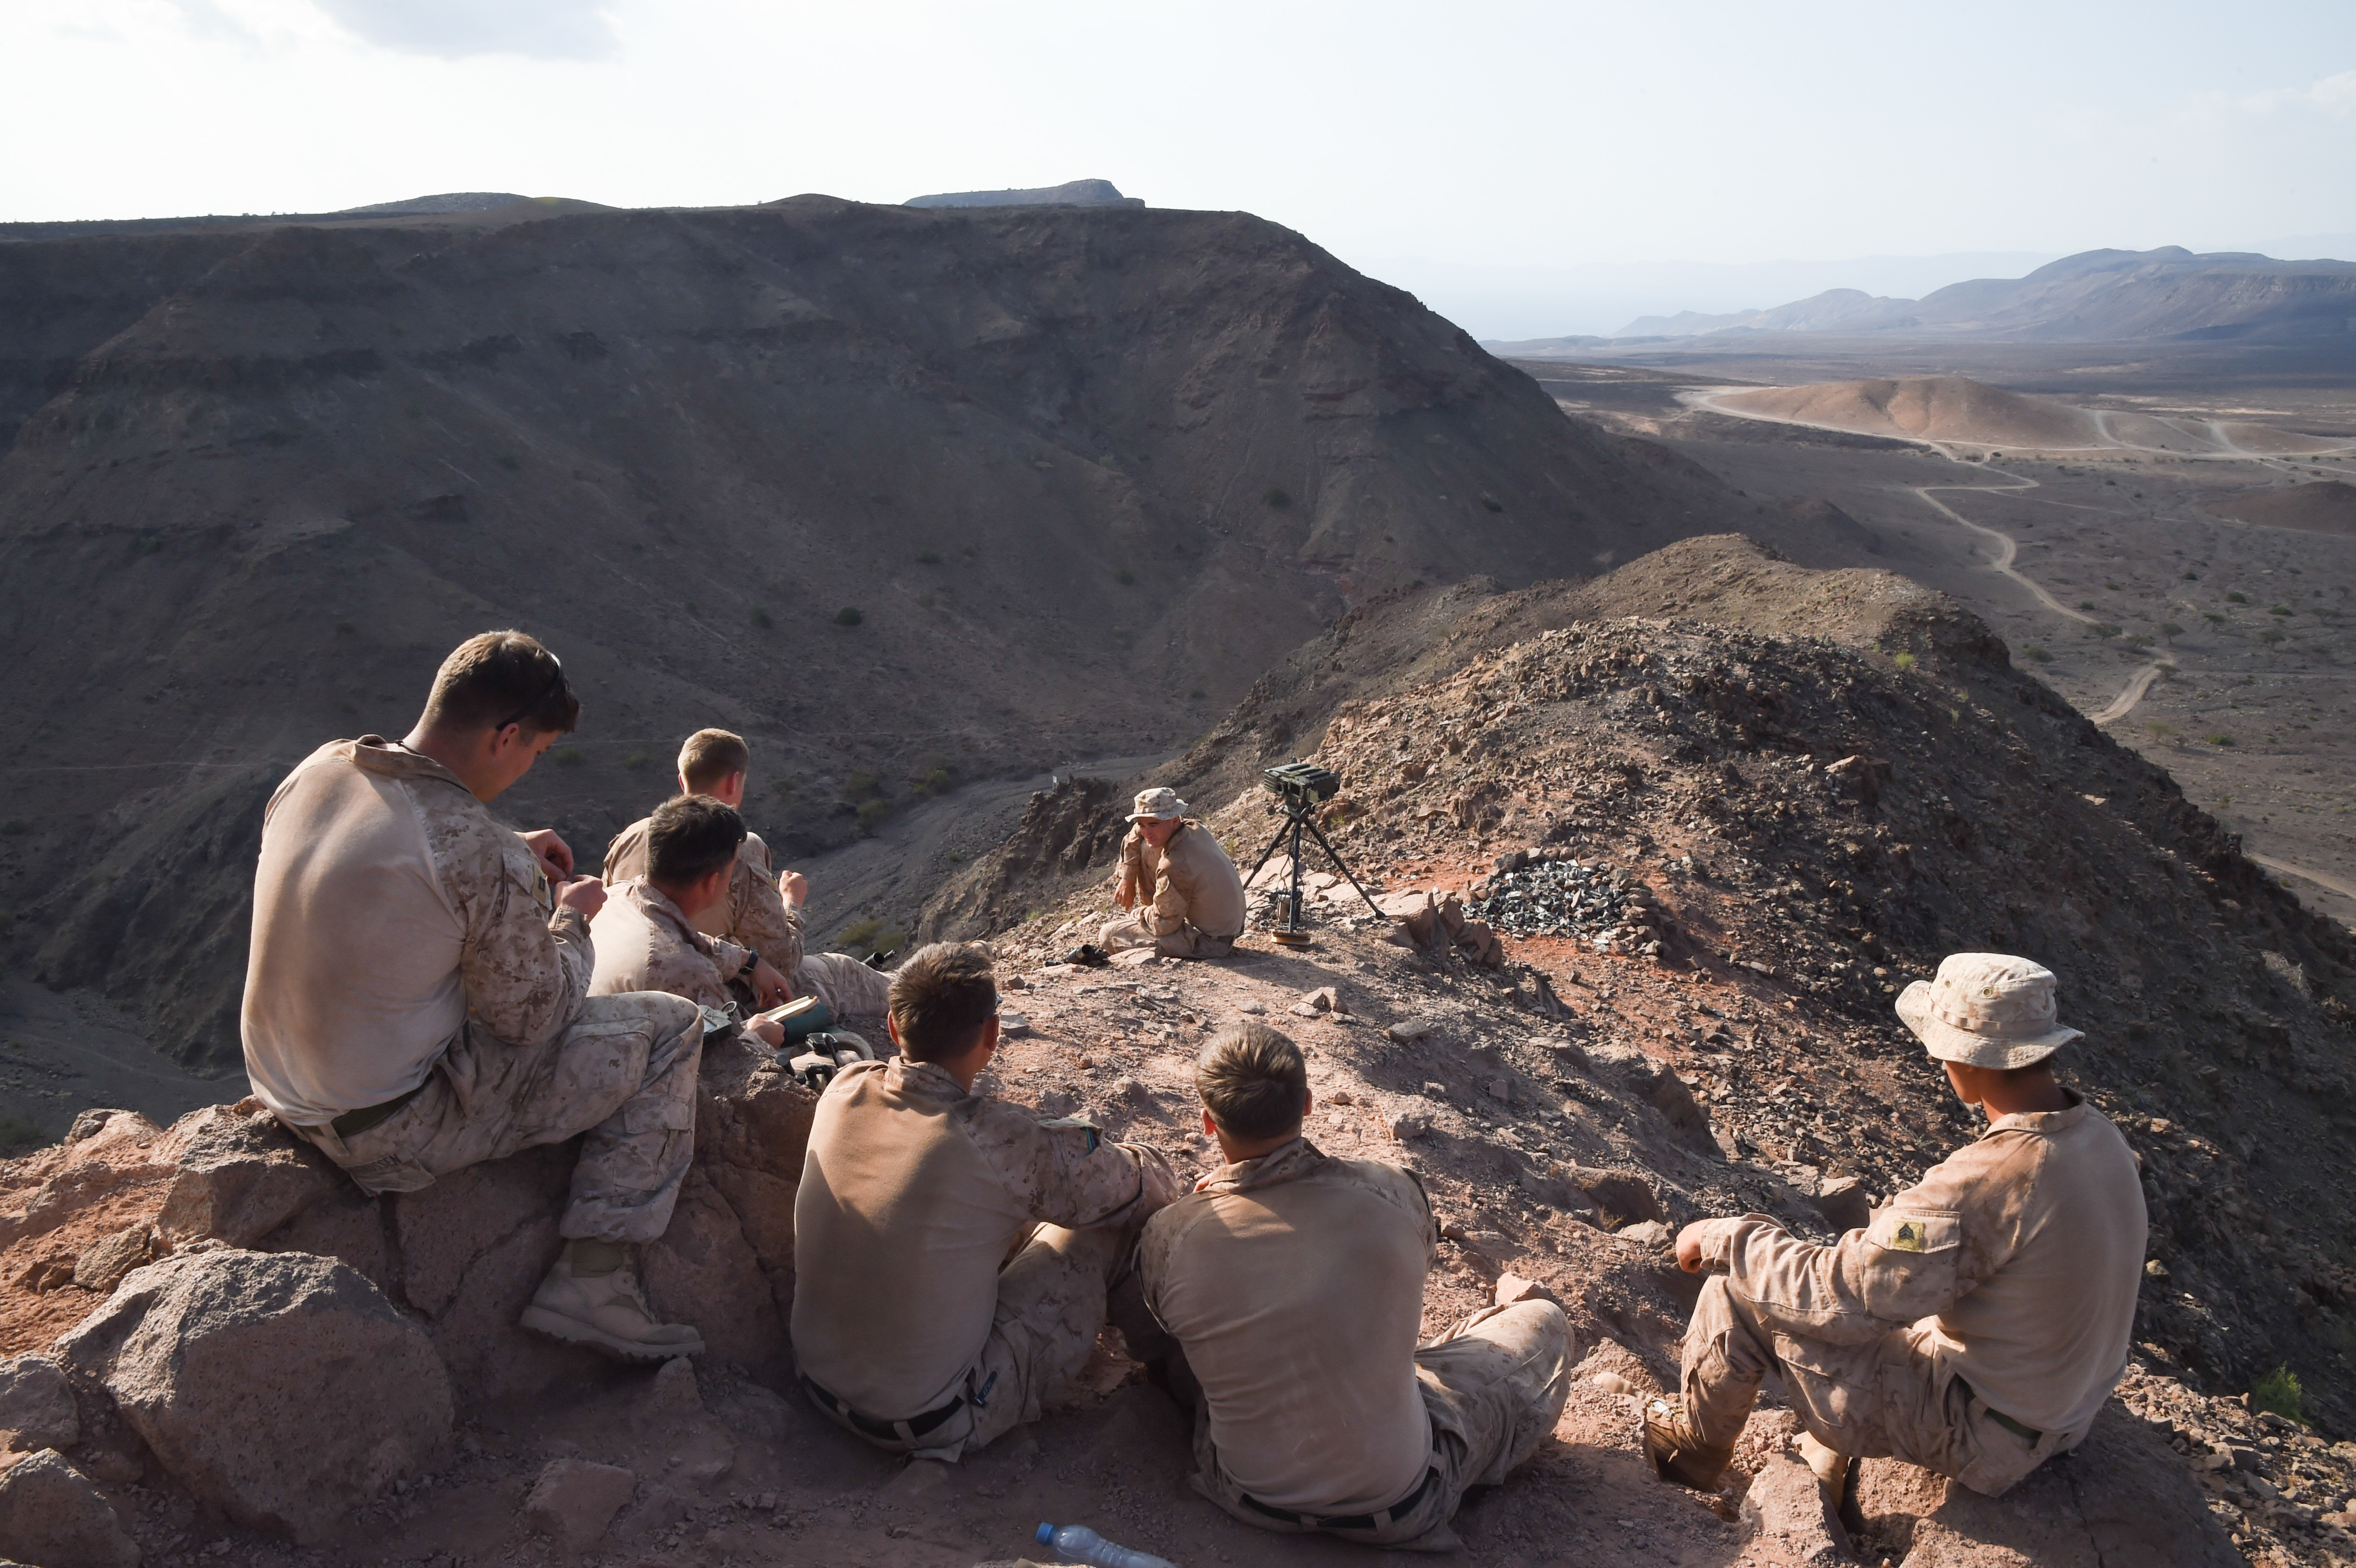 U.S. Marine Corps members with 1st Air Naval Gunfire Liaison Company (ANGLICO), 11th Marine Expeditionary Unit (MEU), wait to communicate with players during a helo-borne raid on the range during Exercise Alligator Dagger, Dec. 18, 2016, at Arta Plage, Djibouti. The exercise allows opportunities for the 11th MEU to maintain their respective skills and proficiencies while intermittently participating in bilateral training with the French. (U.S. Air National Guard photo by Staff Sgt. Penny Snoozy)